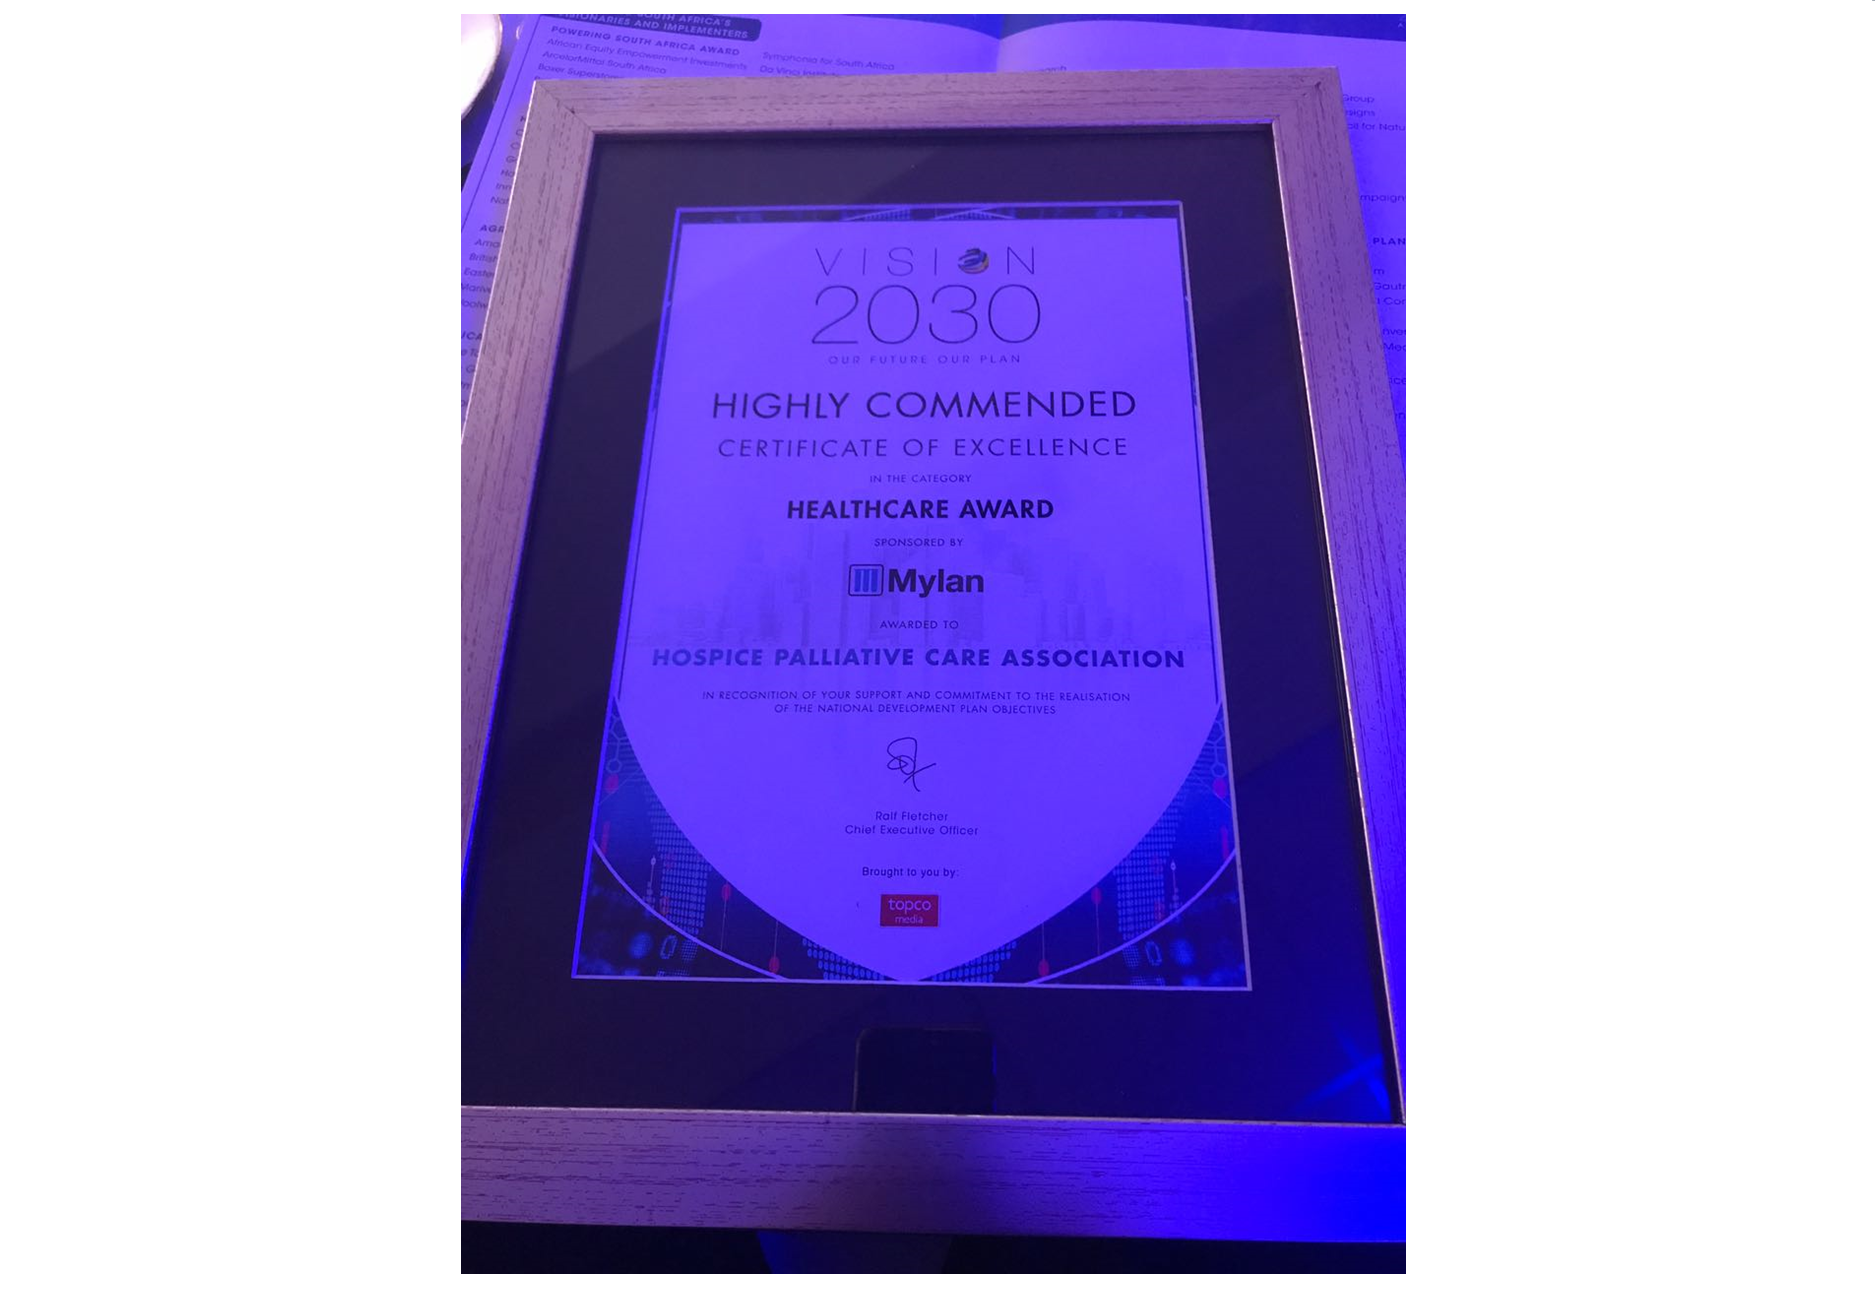 HPCA Receives Runners-Up Award at Vision 2030 Summit